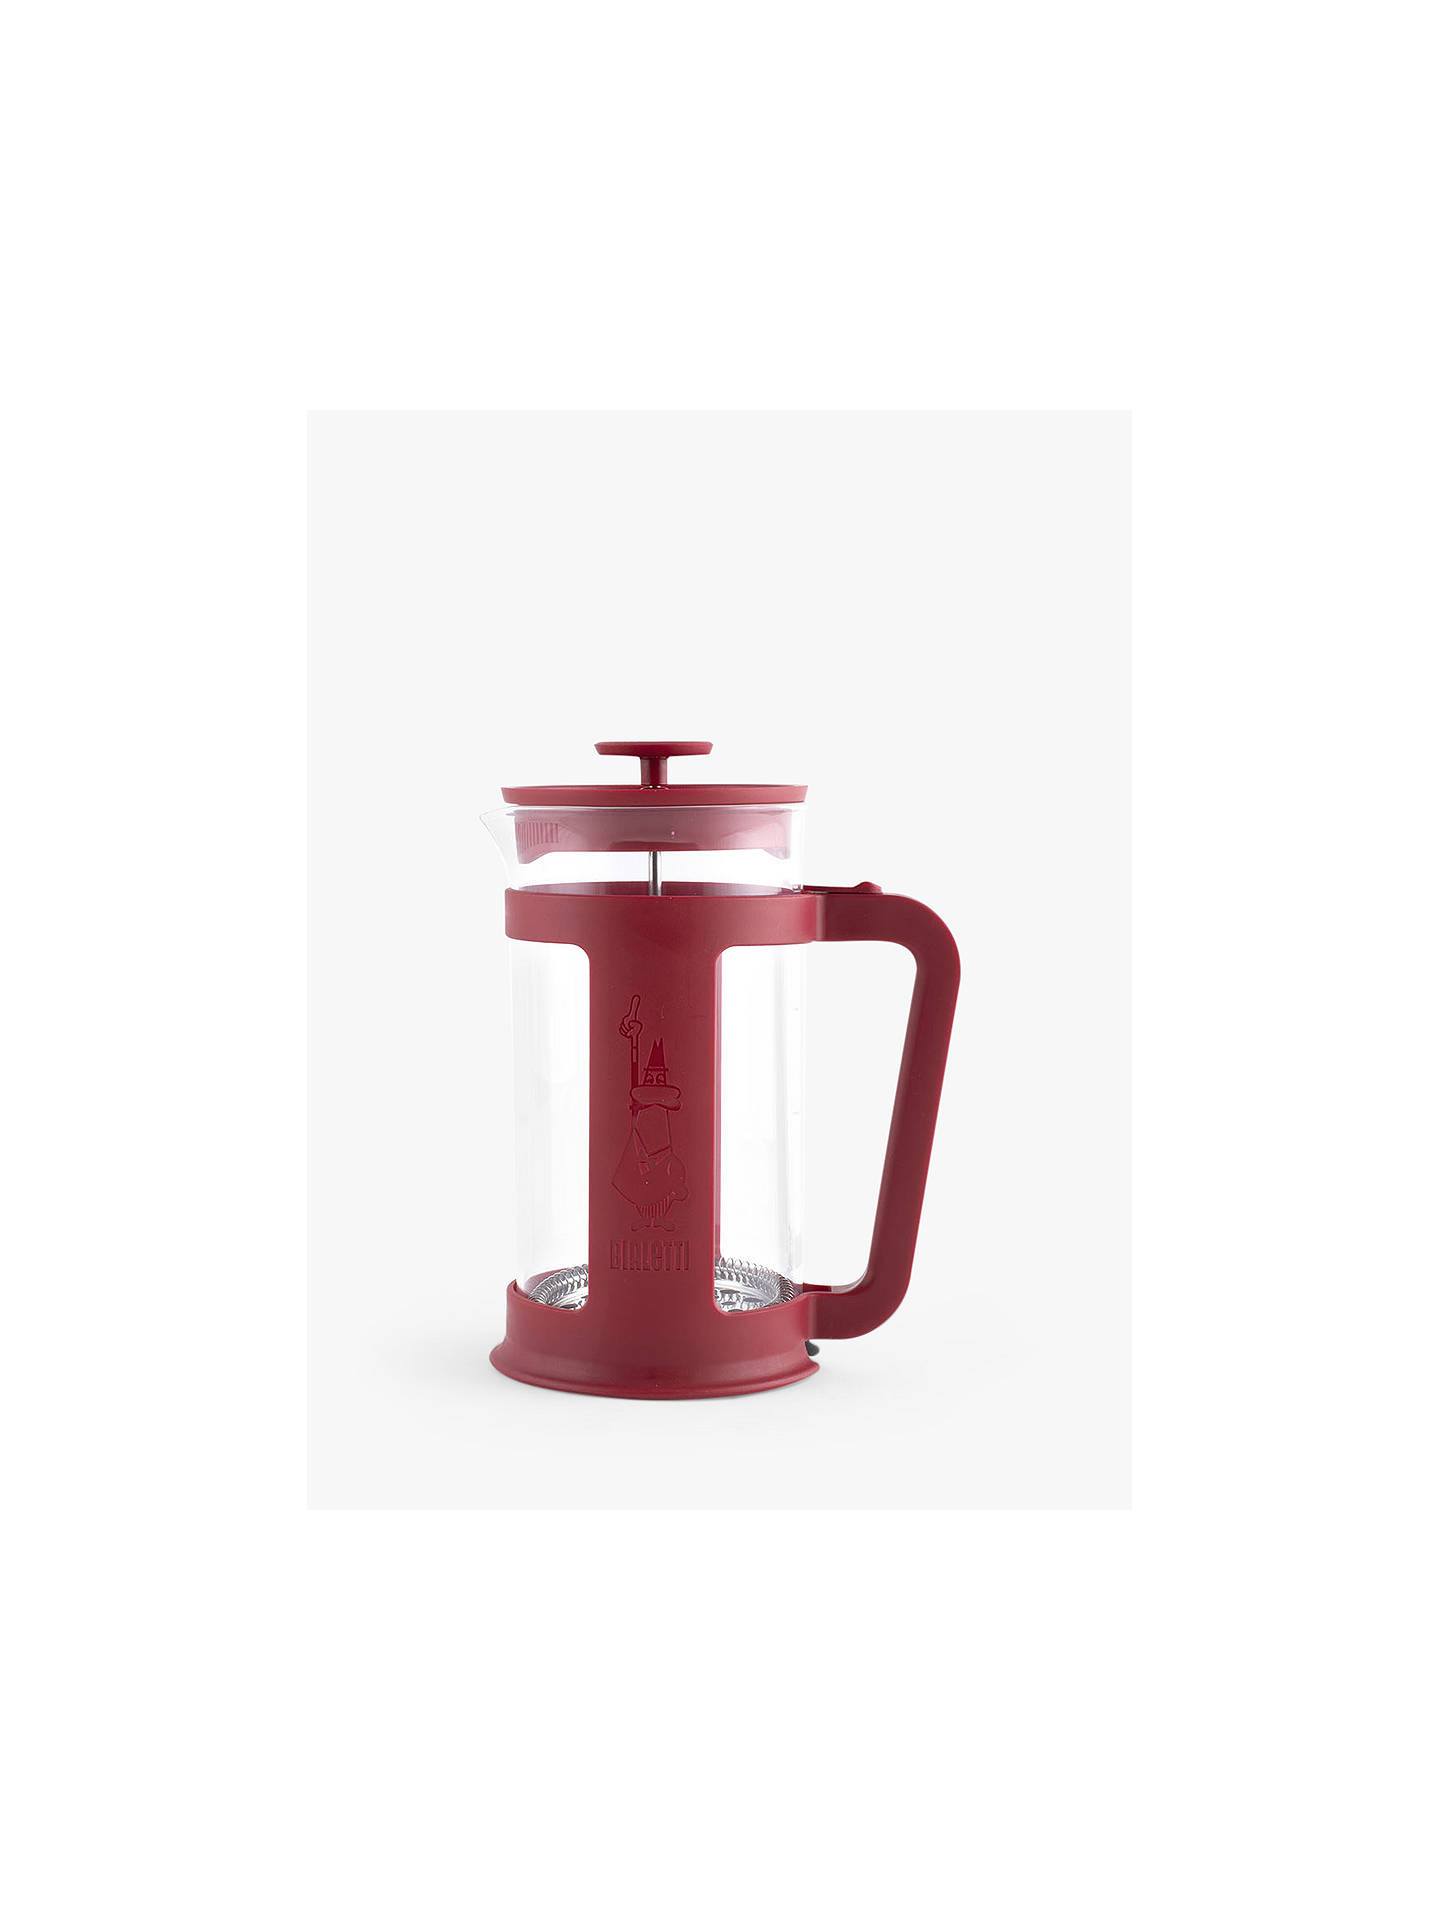 Bialetti 8 Cup Coffee Cafetiere 1l Red